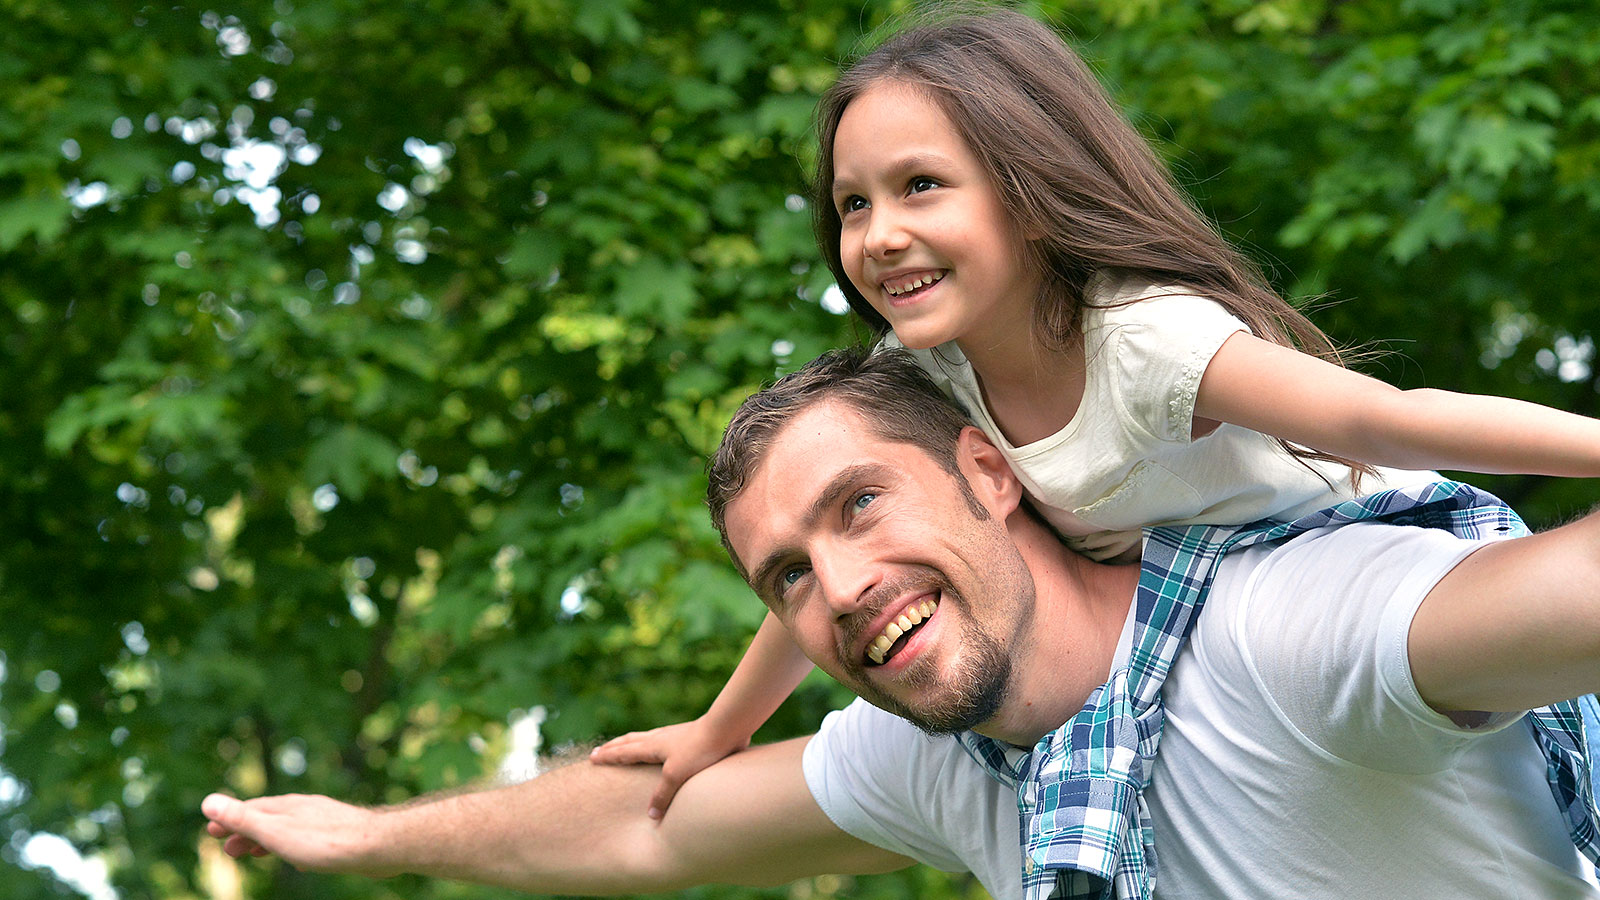 A Father's Day reminder from science: Your kids aren't really growing up quickly